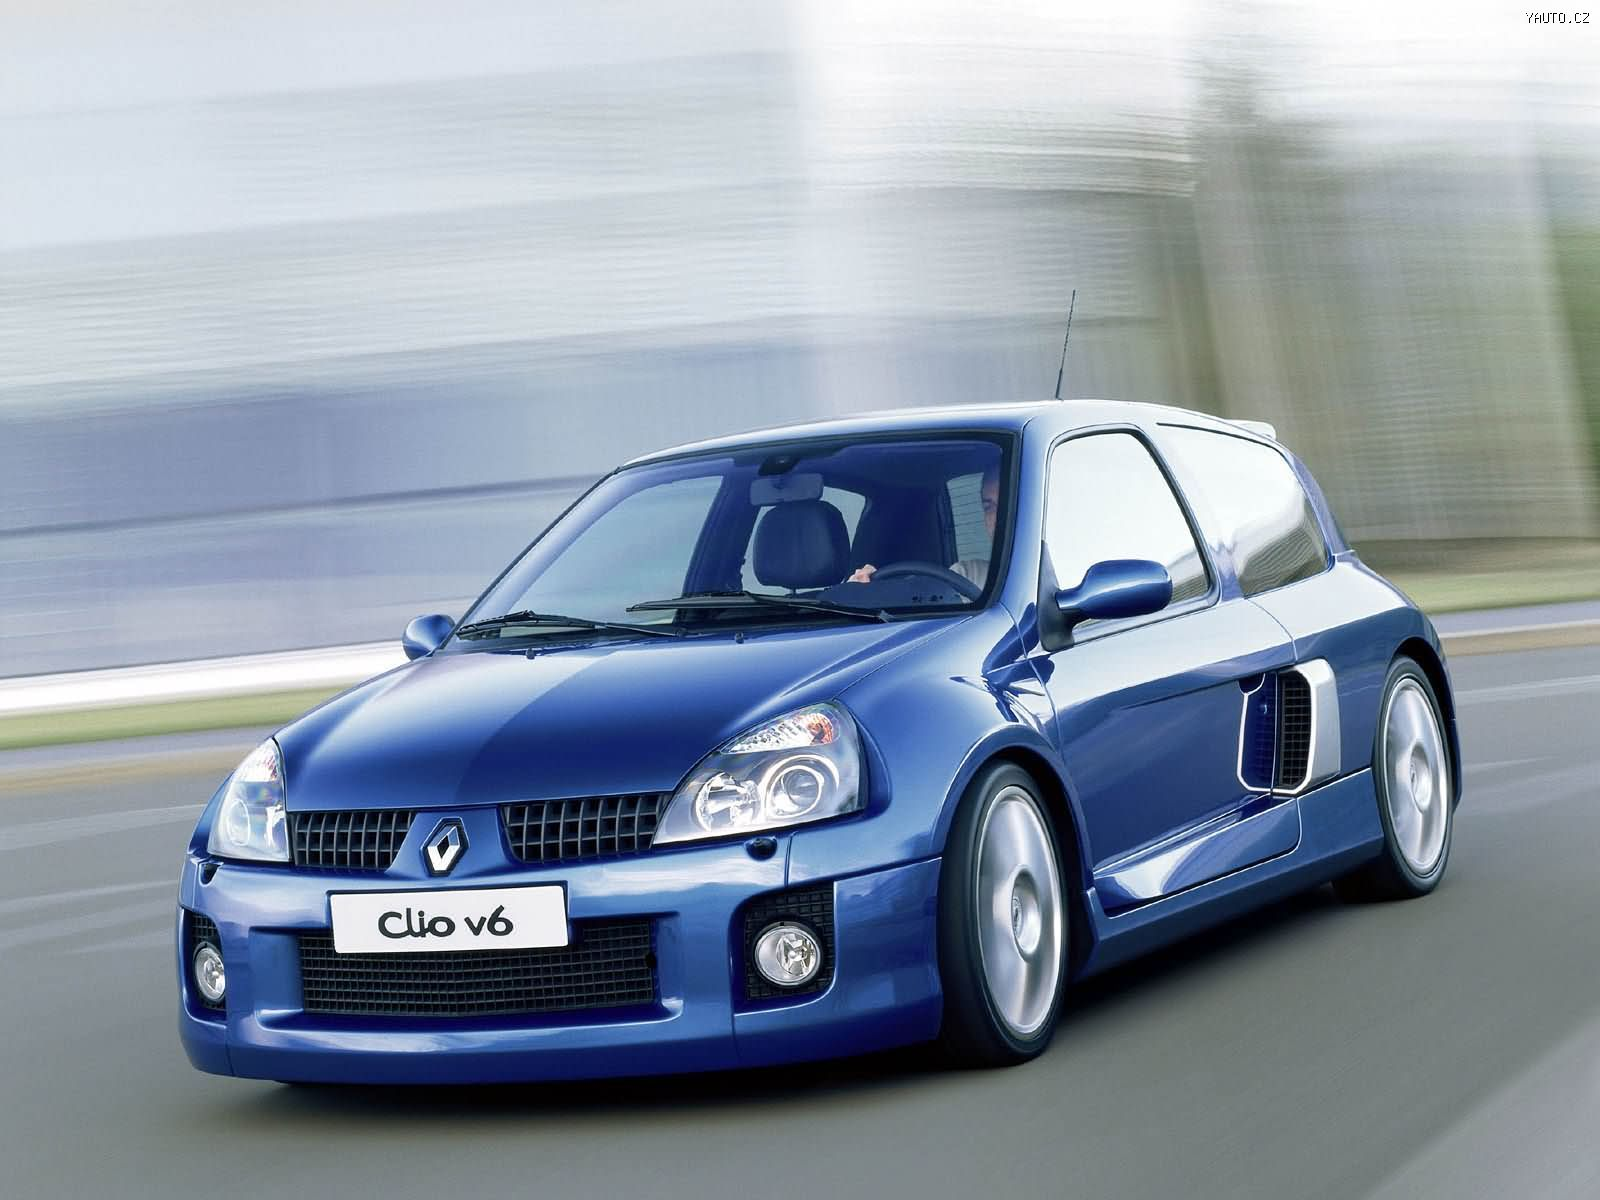 renault clio v6 sport 2003 auta na plochu tapety na plochu wallpapers. Black Bedroom Furniture Sets. Home Design Ideas